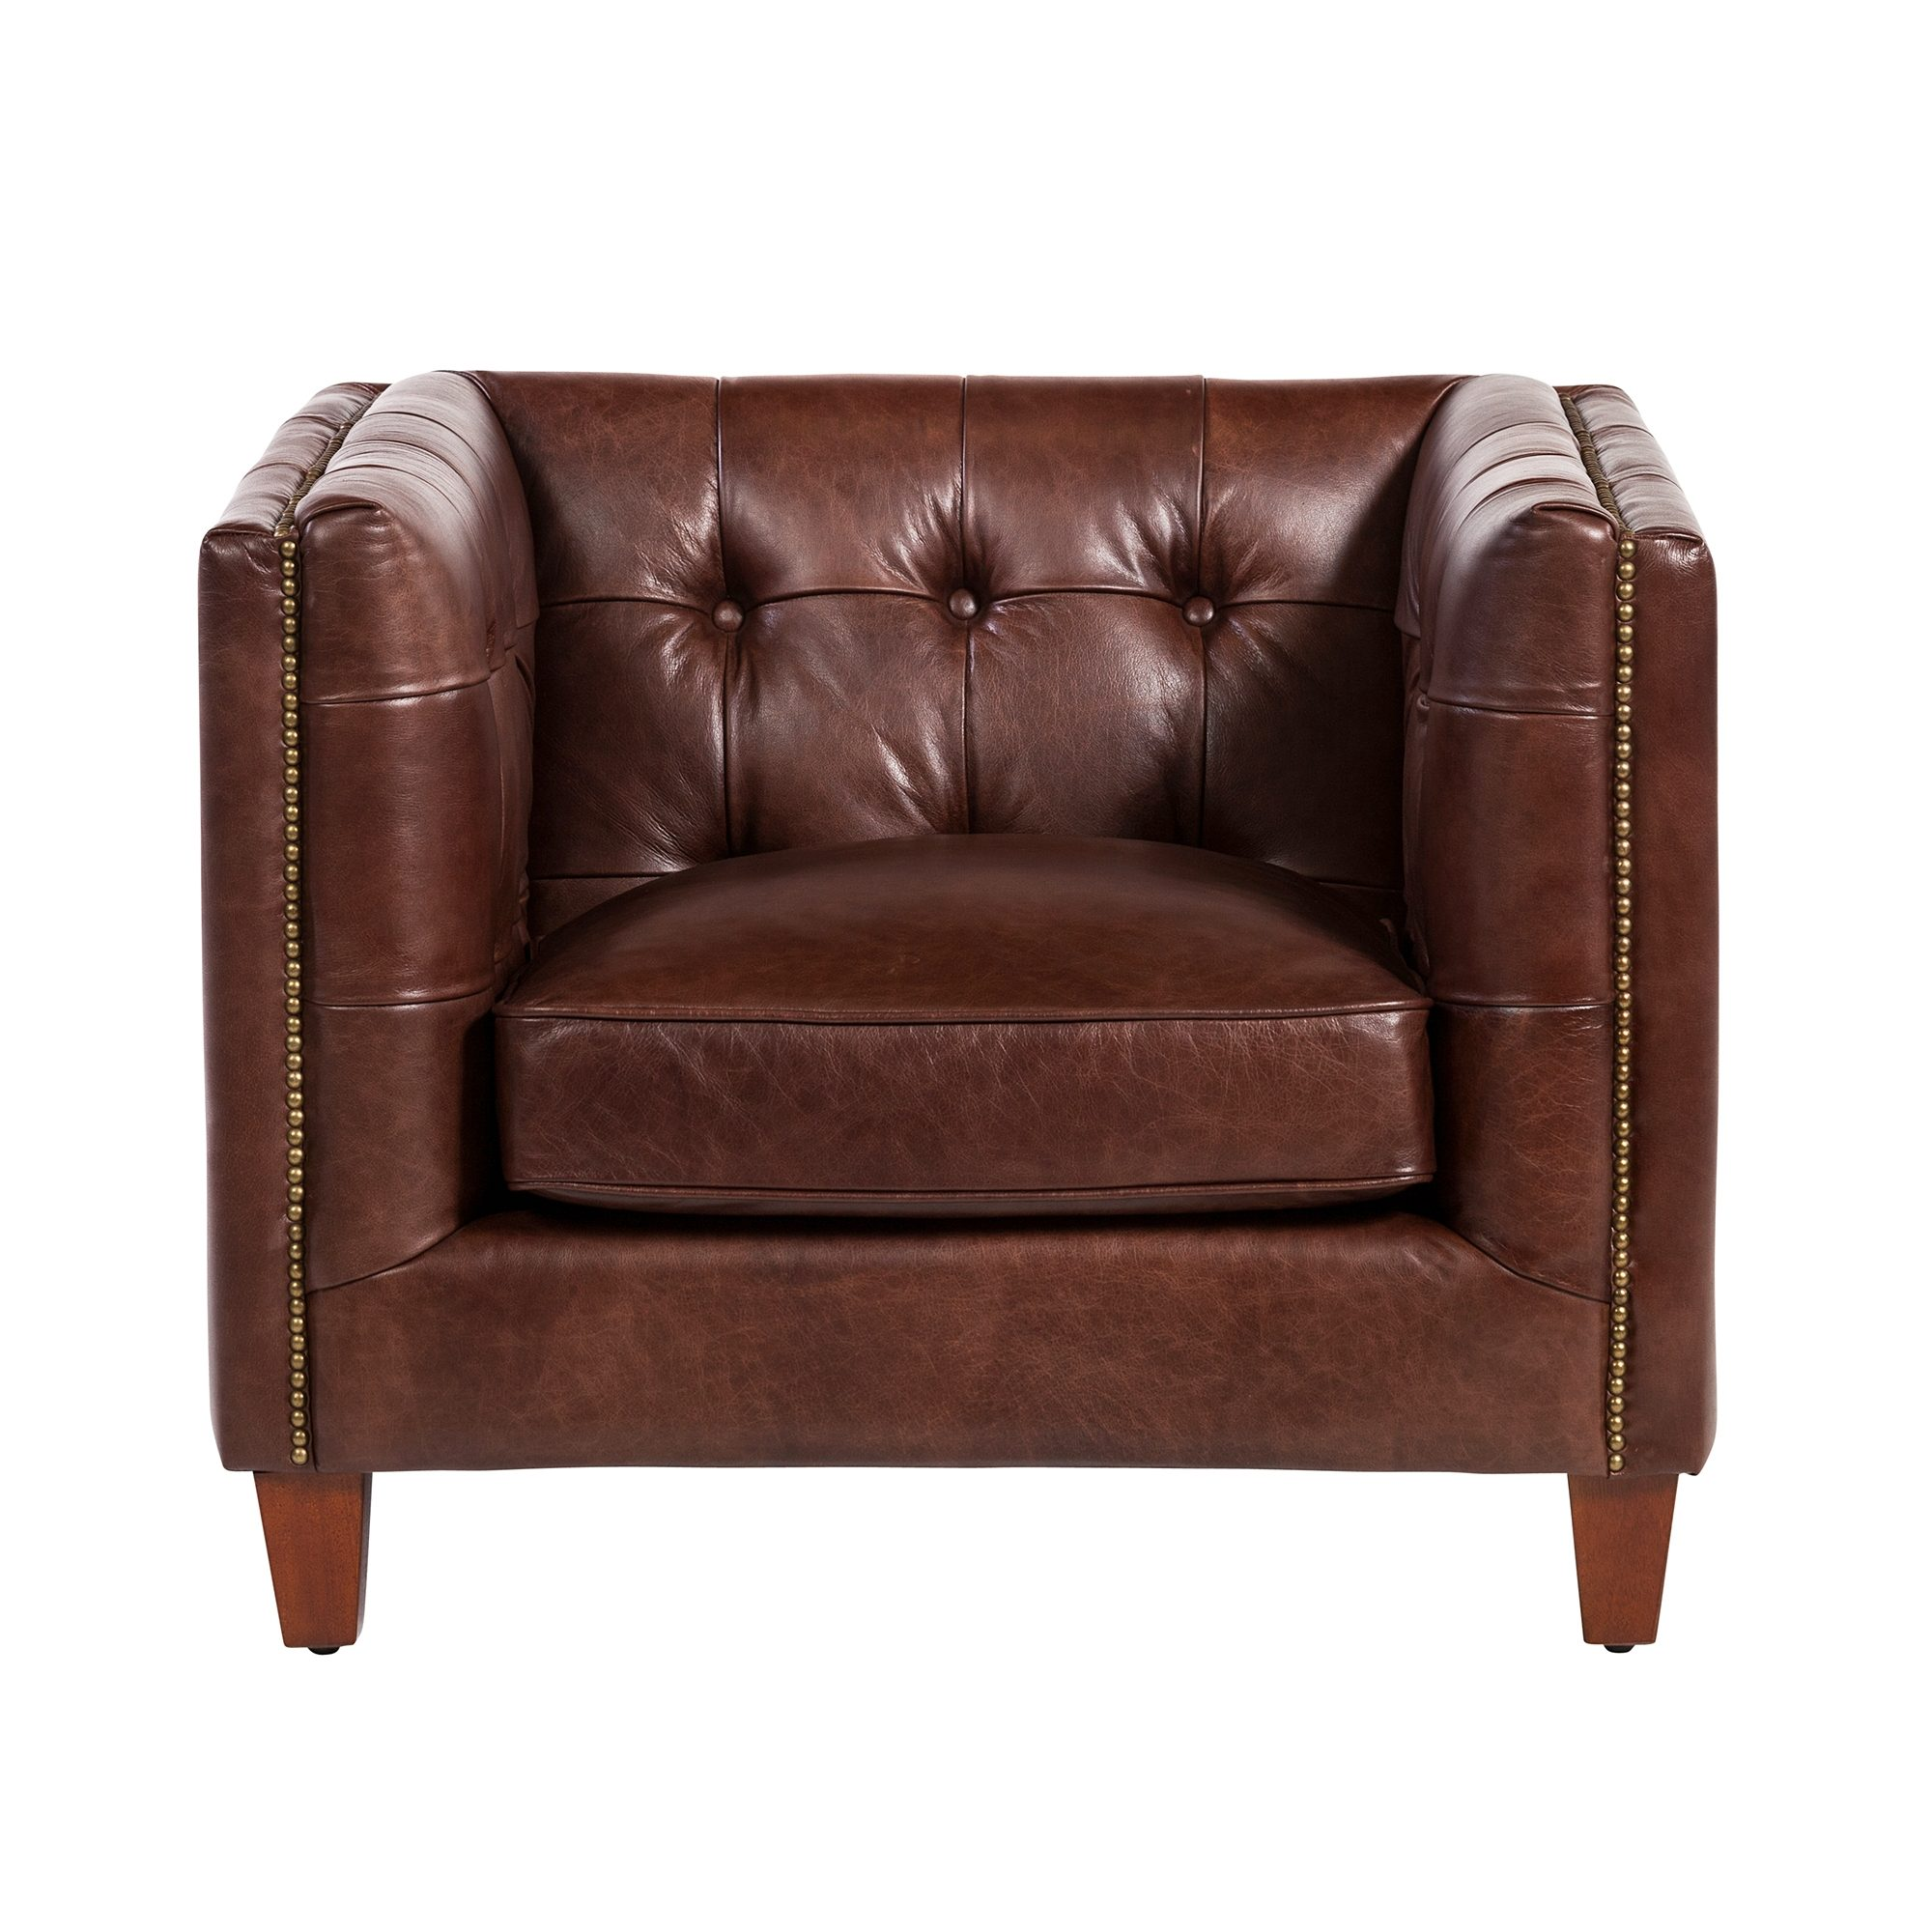 Cape Town Club Chair, Antique Brown Leather, Antique Brown Leather